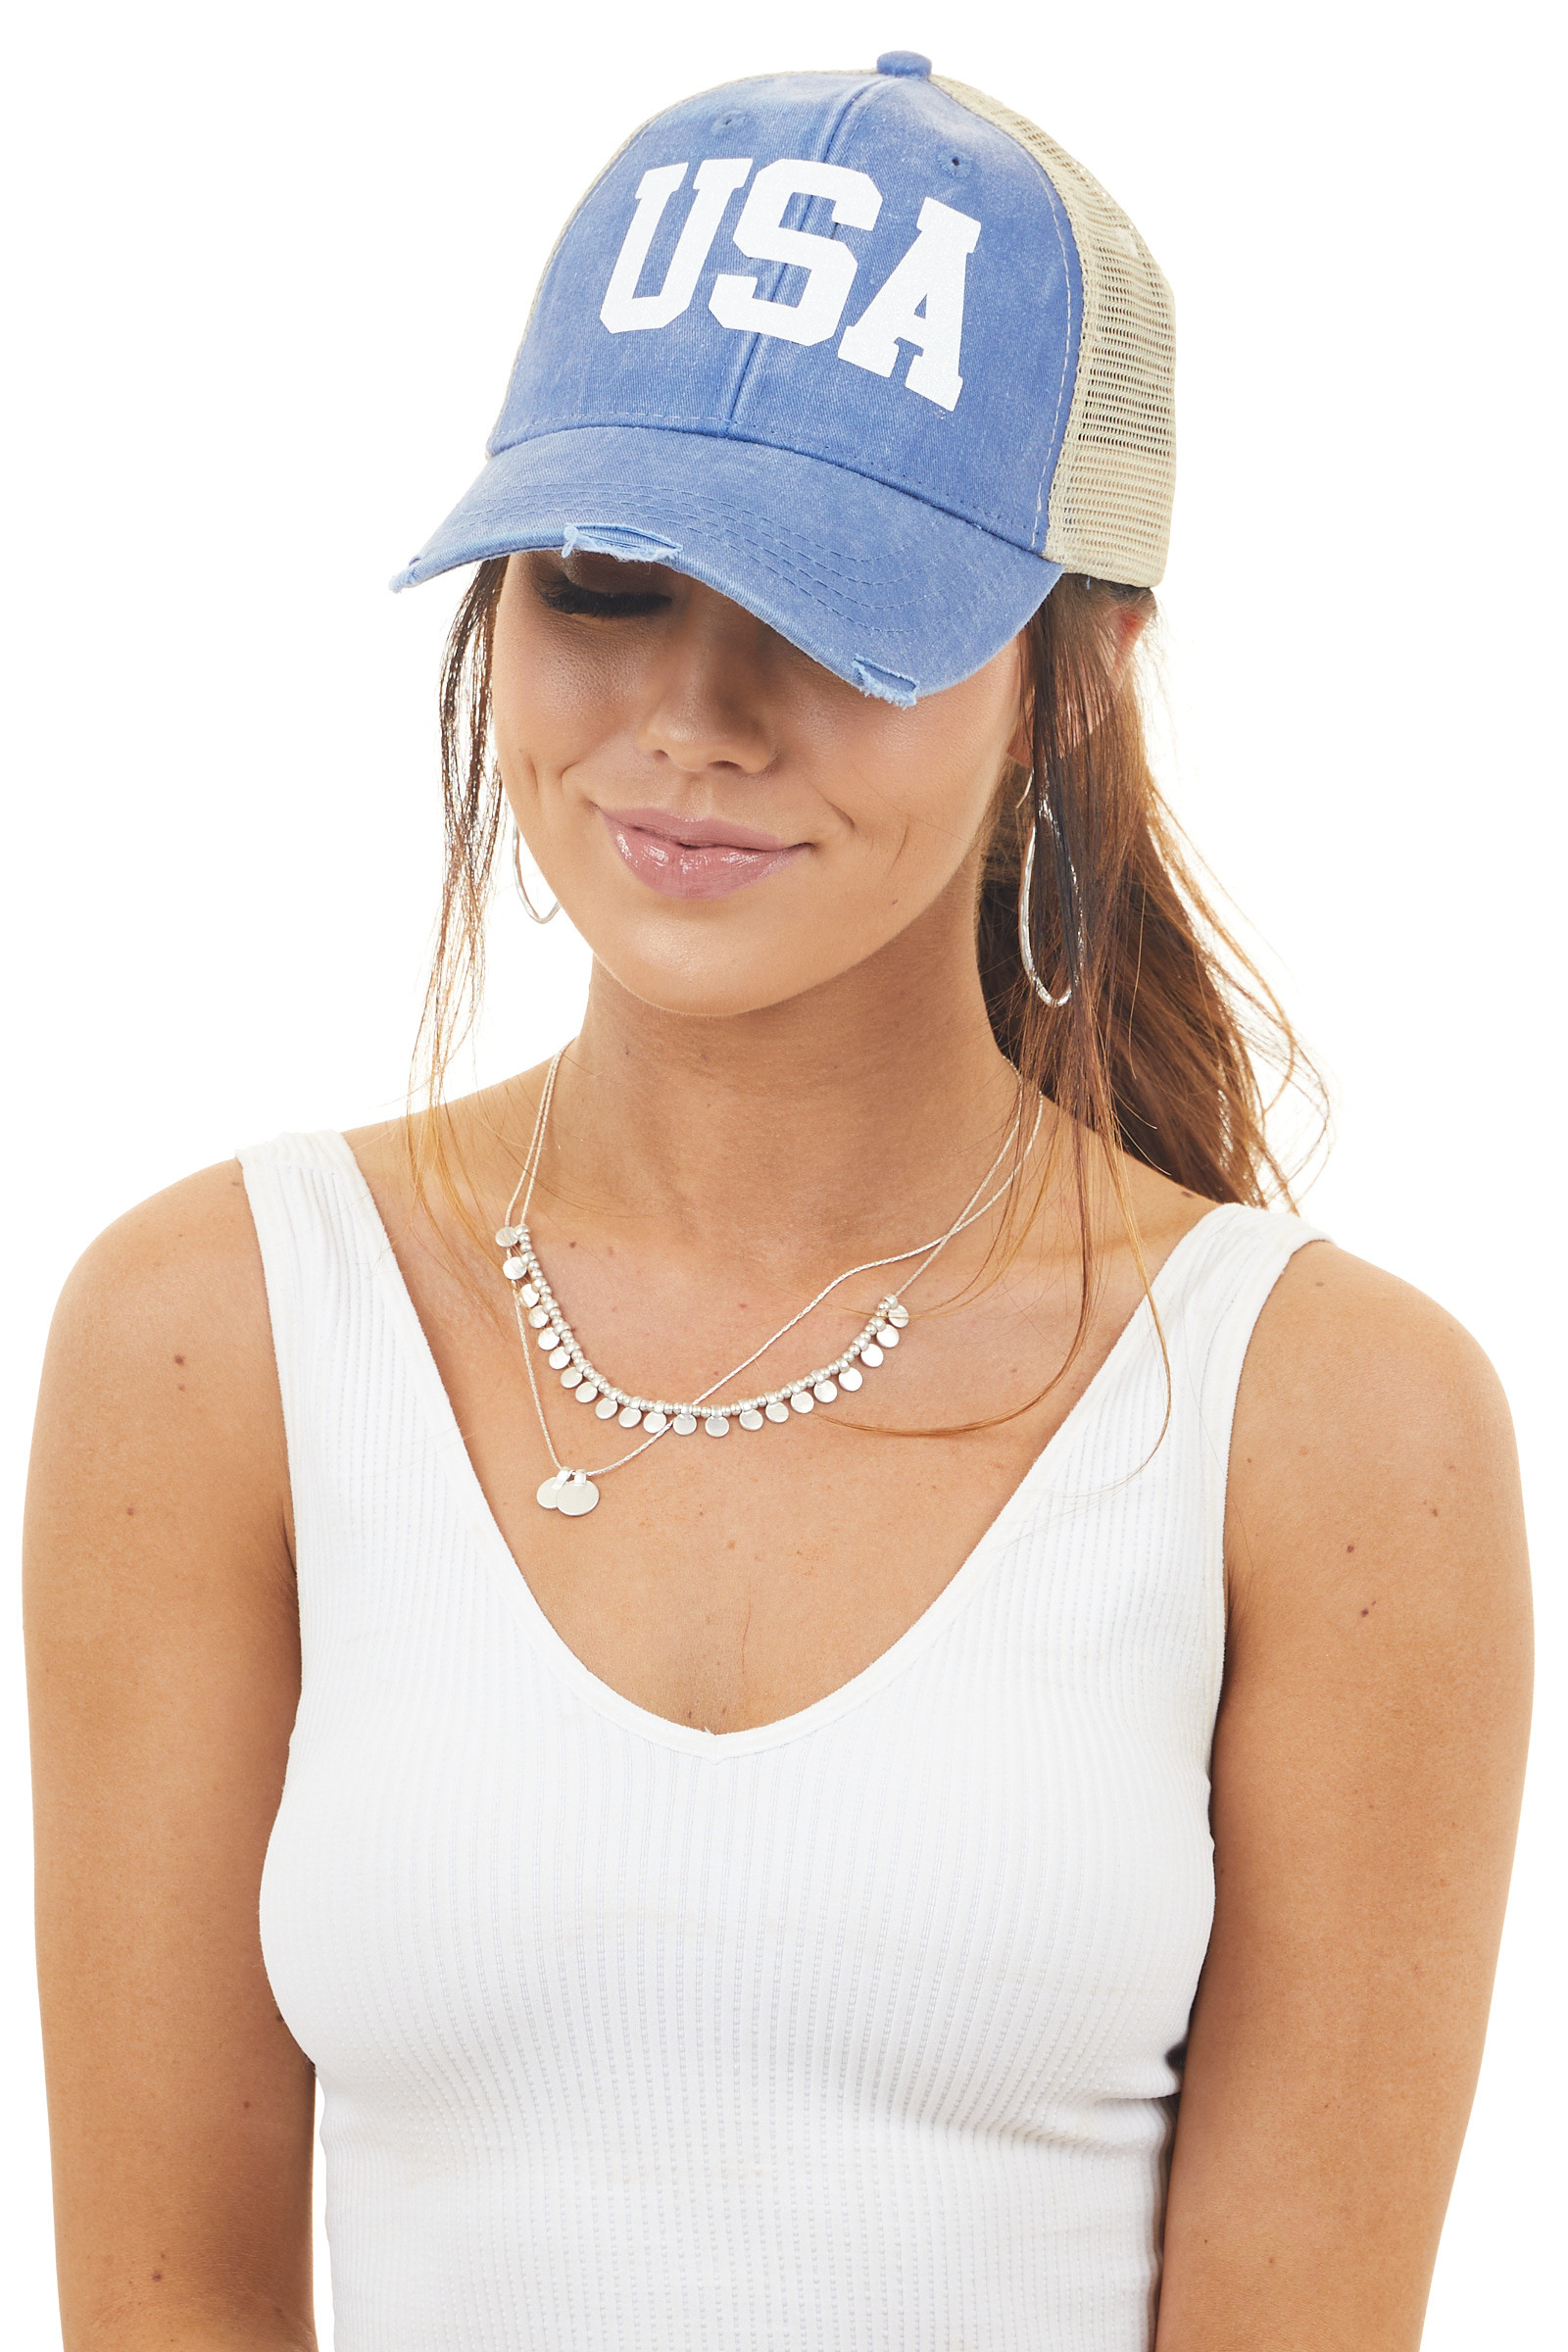 Vintage Blue Distressed Trucker Cap with Glitter 'USA' Decal